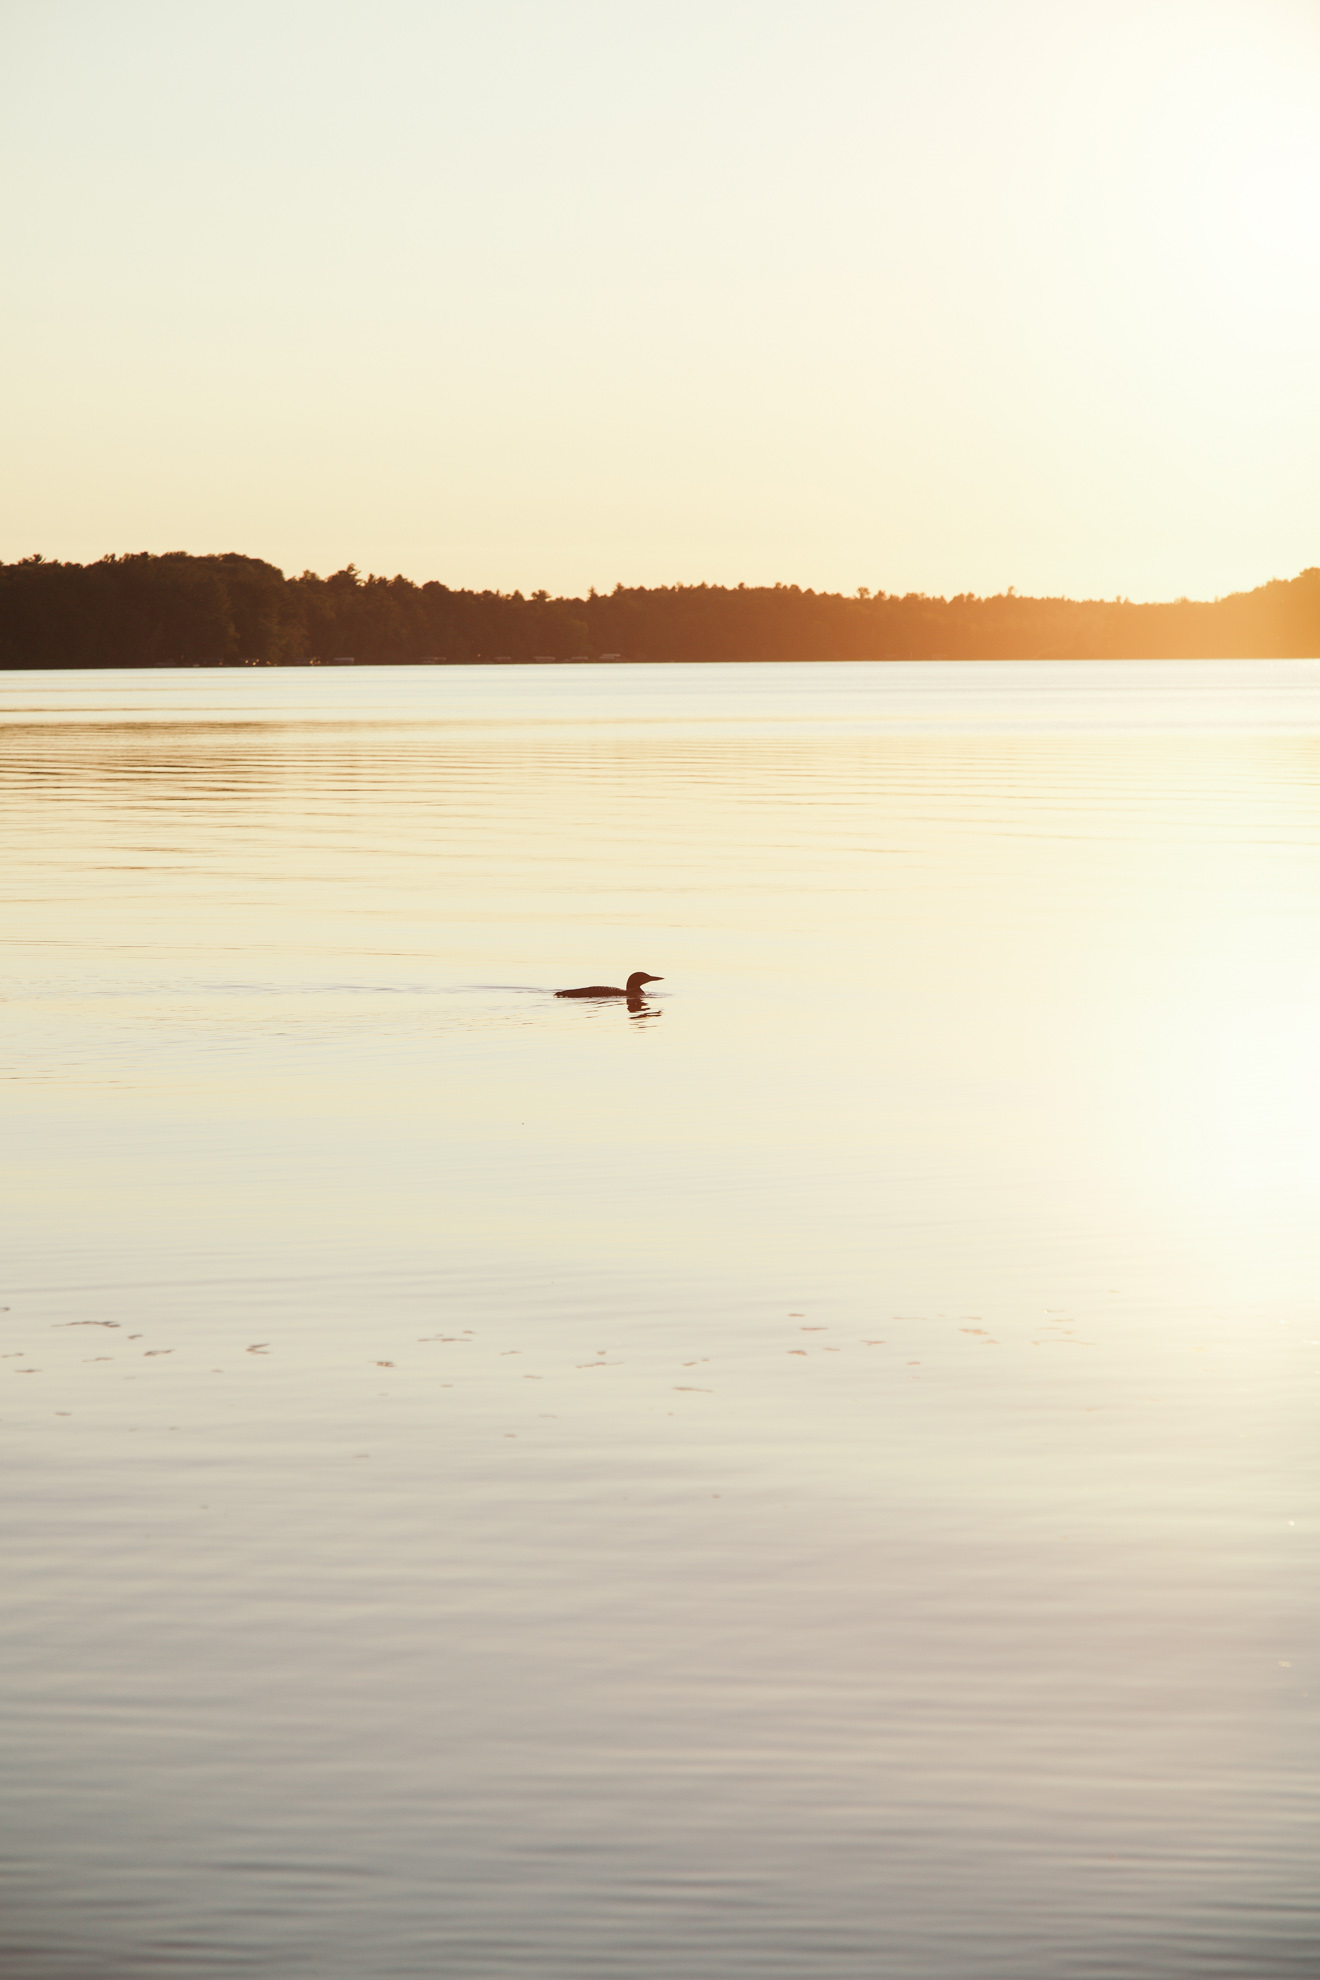 loon on a lake at sunset in wisconsin